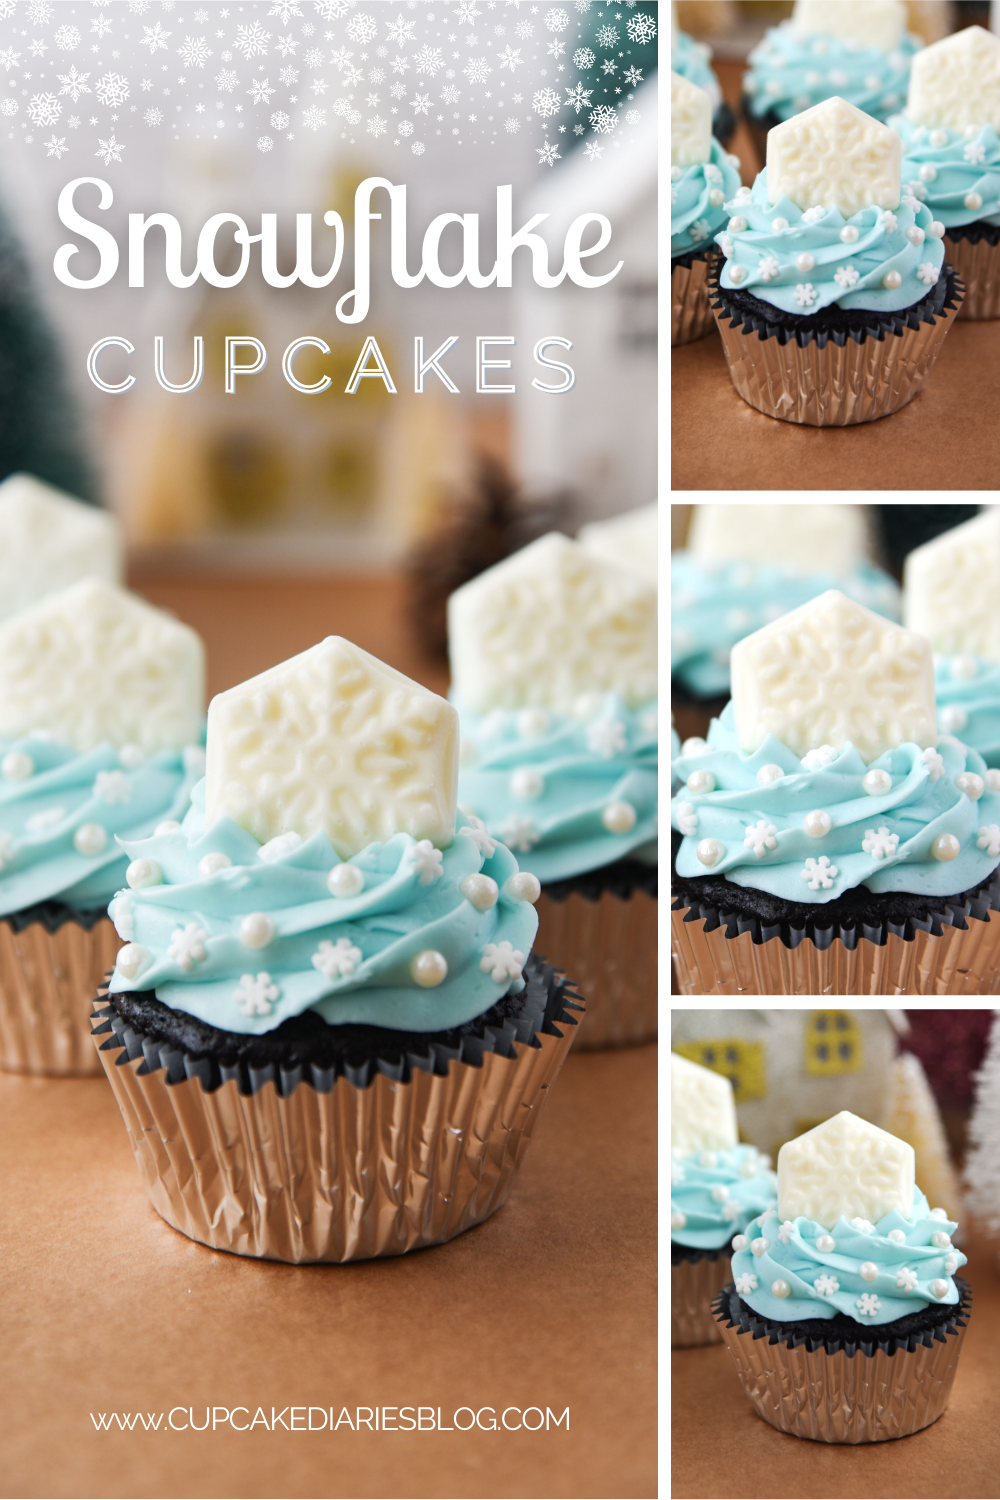 These chocolate cupcakes are topped with a smooth buttercream frosting, winter sprinkles, and a white chocolate snowflake. Perfect for a Frozen party or a winter event!